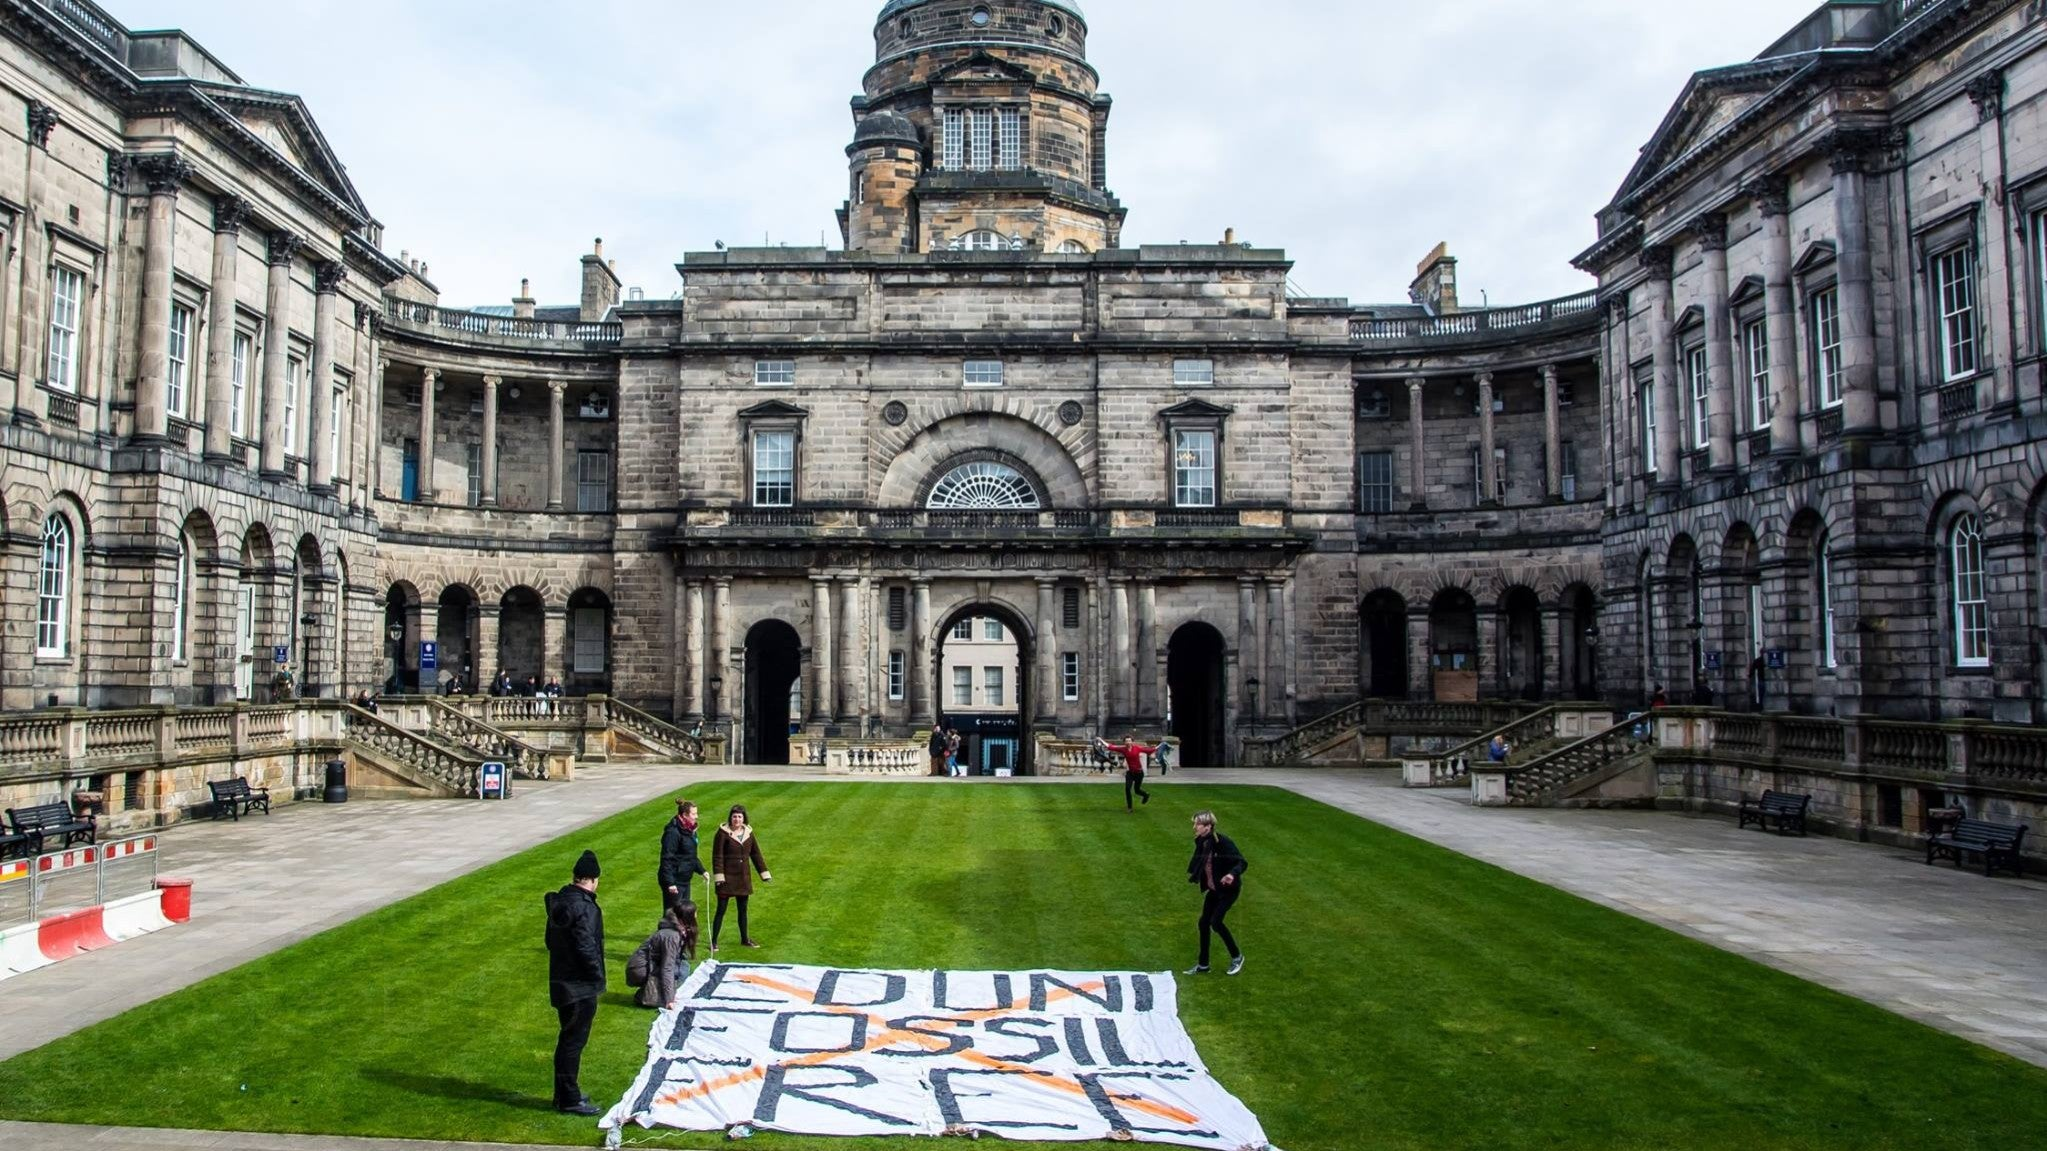 Climate change: More than 1000 institutions pledge to withdraw investment from fossil fuels